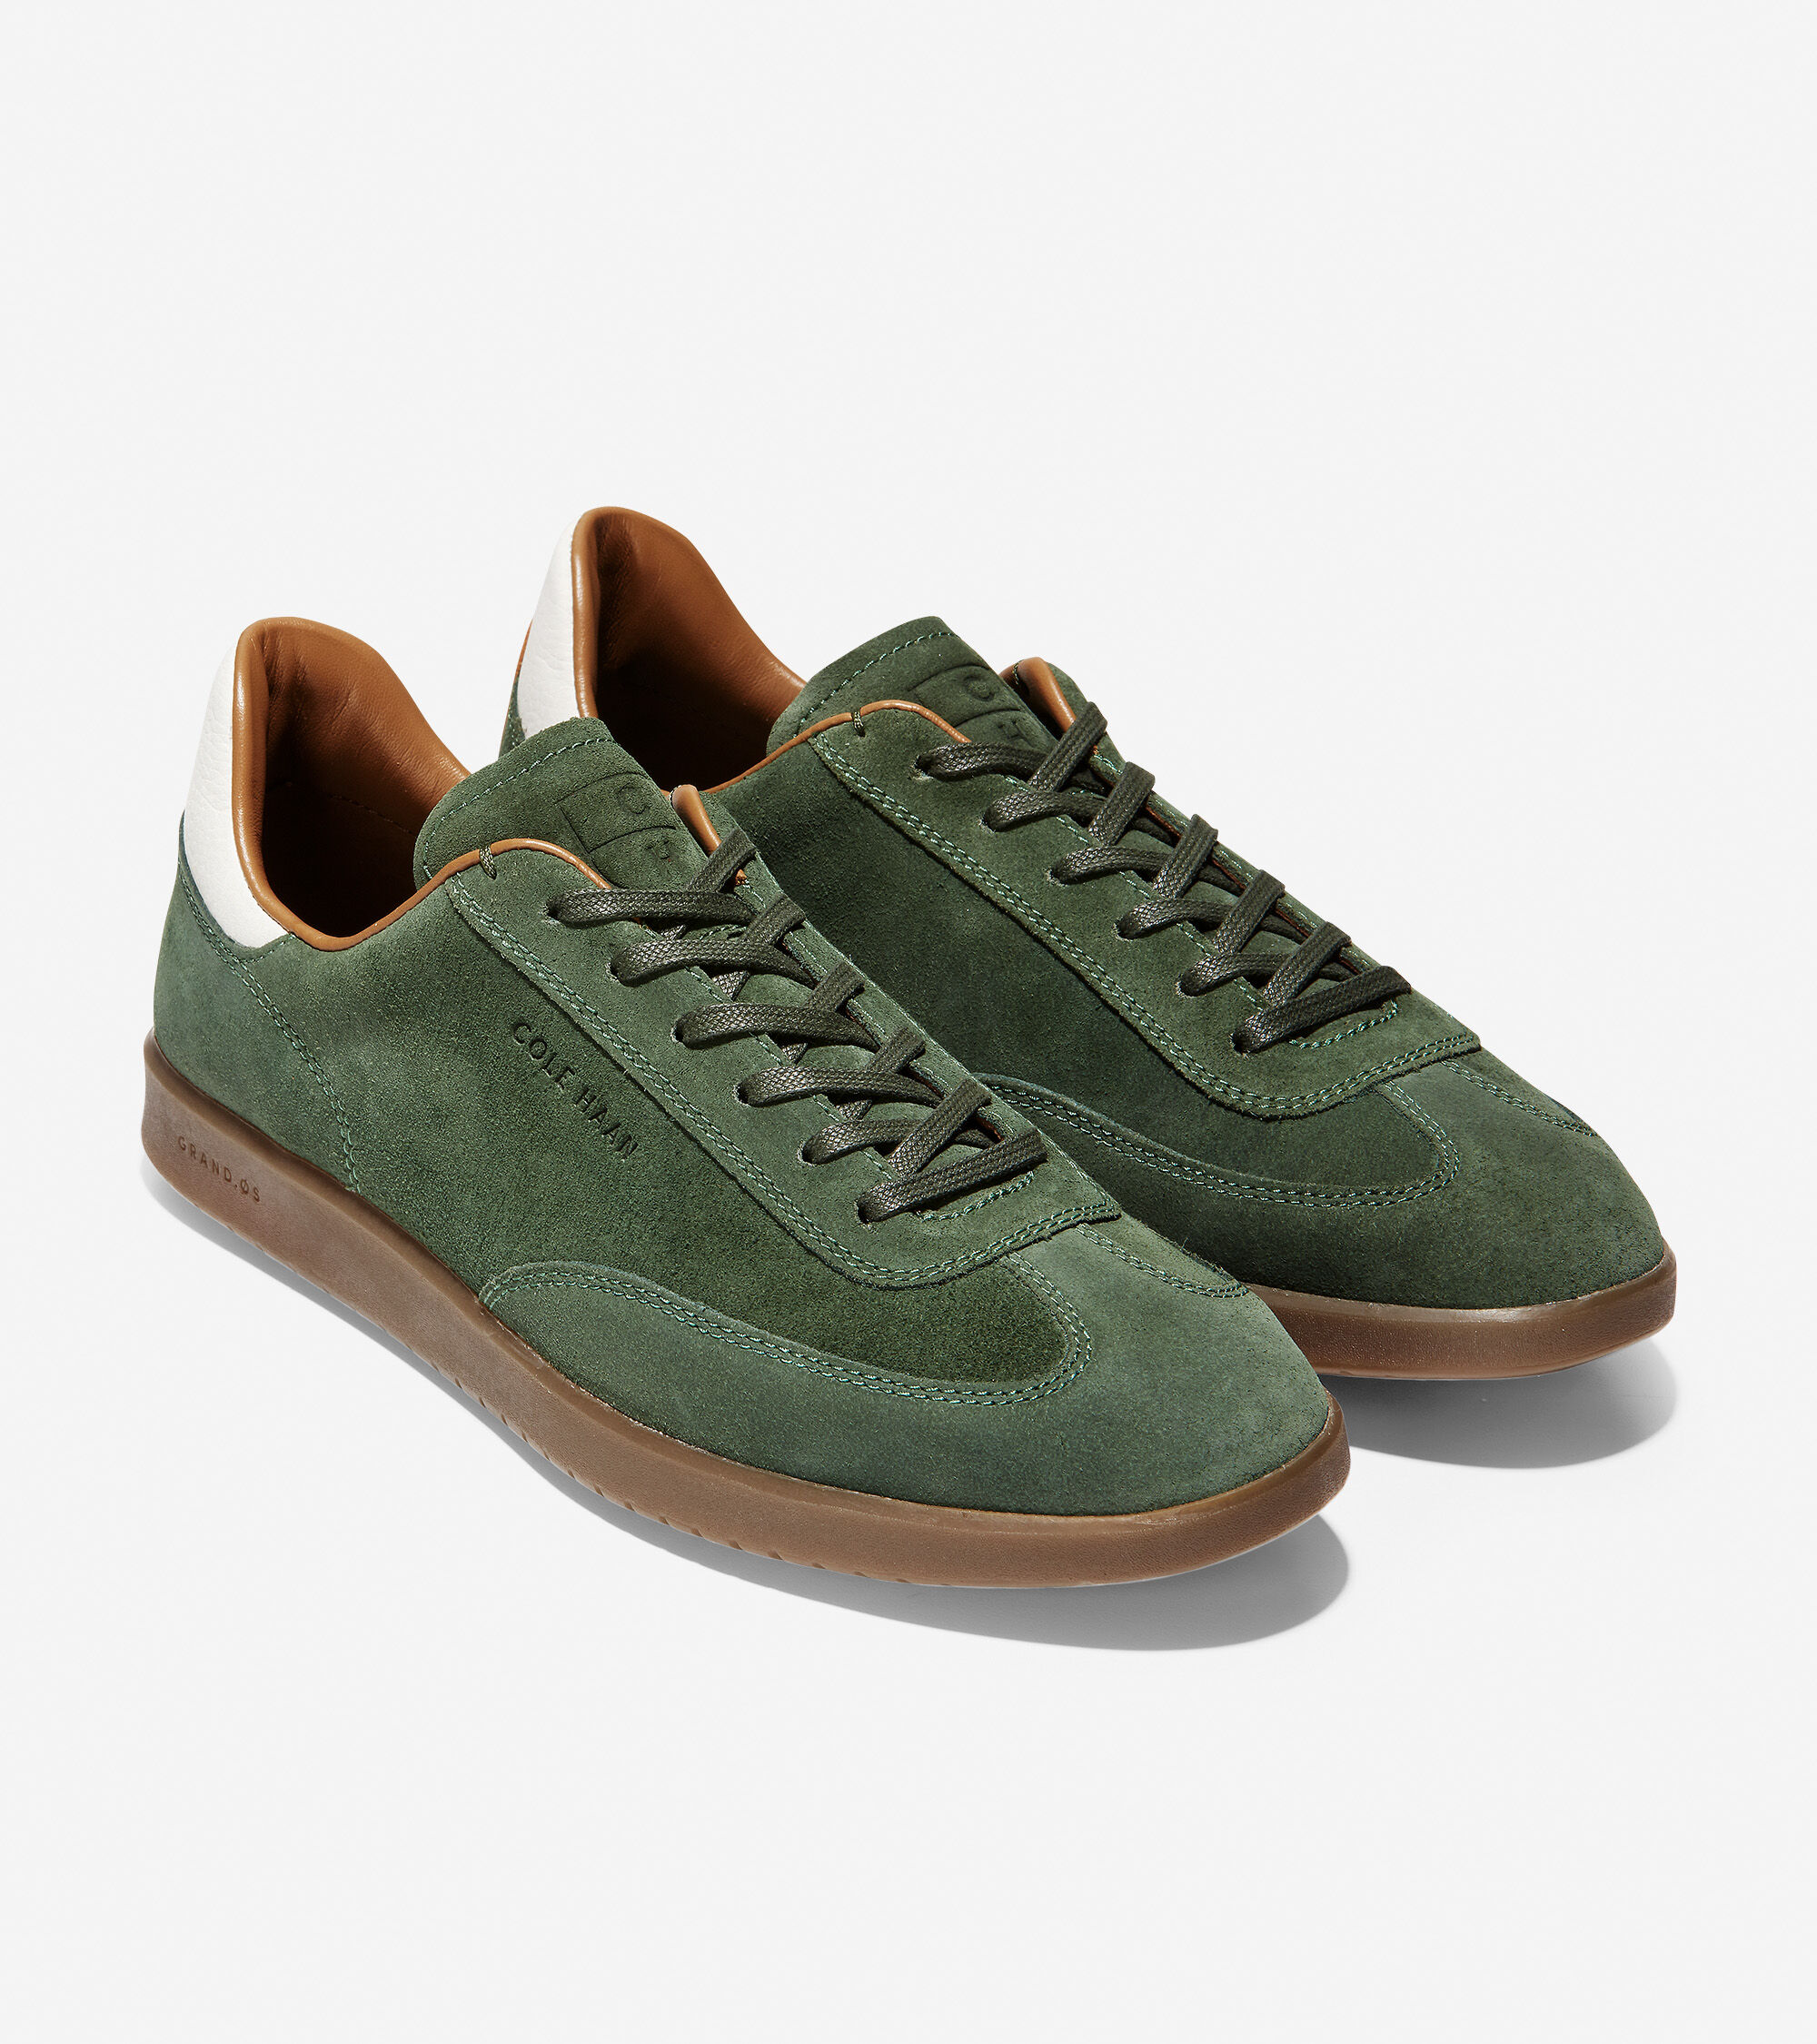 Olive Green Suede   Cole Haan